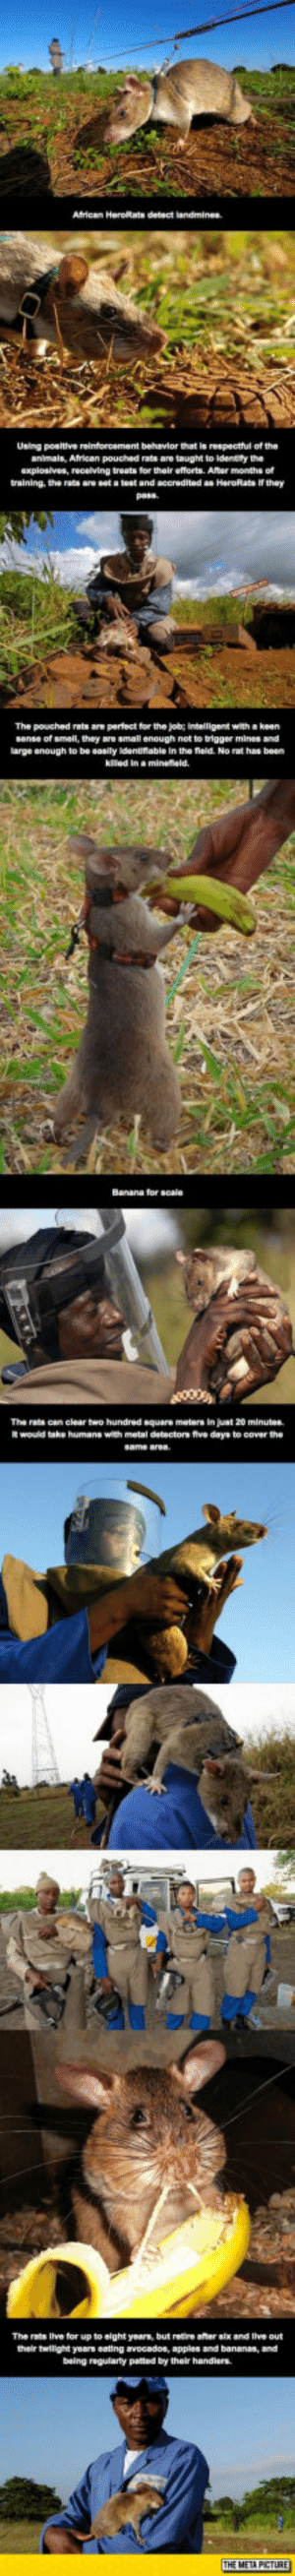 lolzandtrollz:  The Real Heroes You Don't Hear About: Using posltive reinforcement behavior that Is respectful of the  animais, African pouched rats are taught to Identry the  axploslves, recelving treats for their efferts. Aftar months ef  training, the rats are set a test and seeradited as HaroRats if they  pass  The pouched rats aro pertect for the job; intelligent with keen  sense of smell, they are small enough not to trigger mines and  arge enough to be easily Identlable in the fleld. No rat has been  The rats can clear two hundred square meters in Juat 20 minubes  d take humans win metal detactors five days to cover the  The rats Iive for up to eight years, but retire after six and Ilve out  their twllight years eating avocados, apples and bananas, and  being regularty pated by their handars lolzandtrollz:  The Real Heroes You Don't Hear About